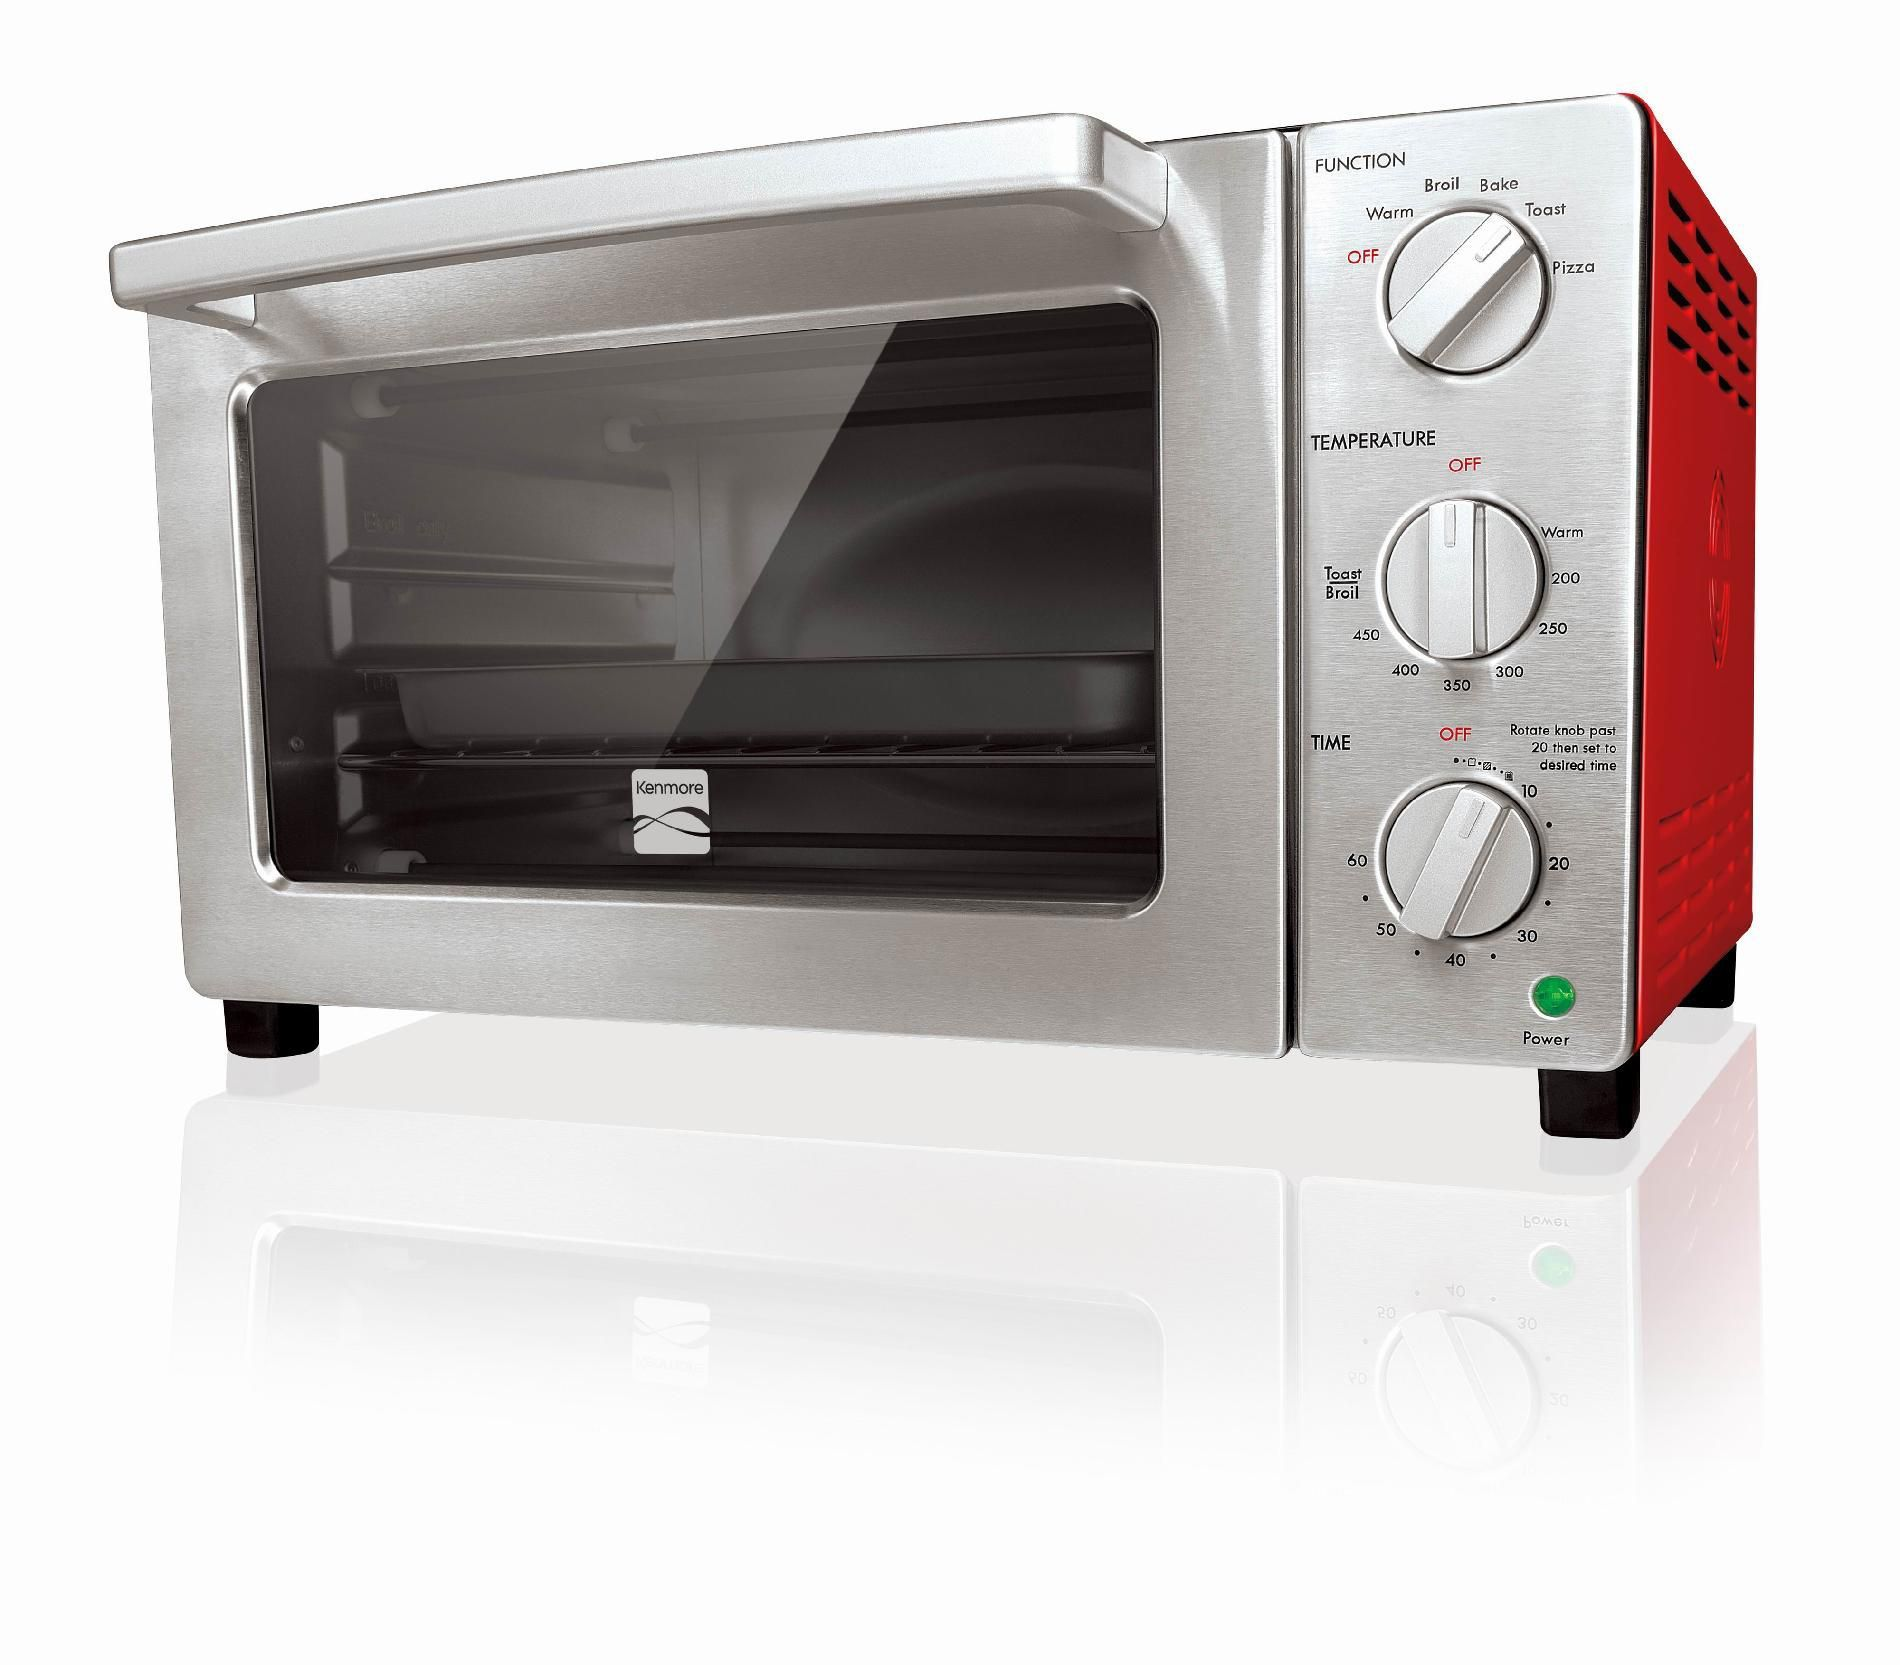 Kenmore 4206 6 Slice Convection Toaster Oven Red Convection